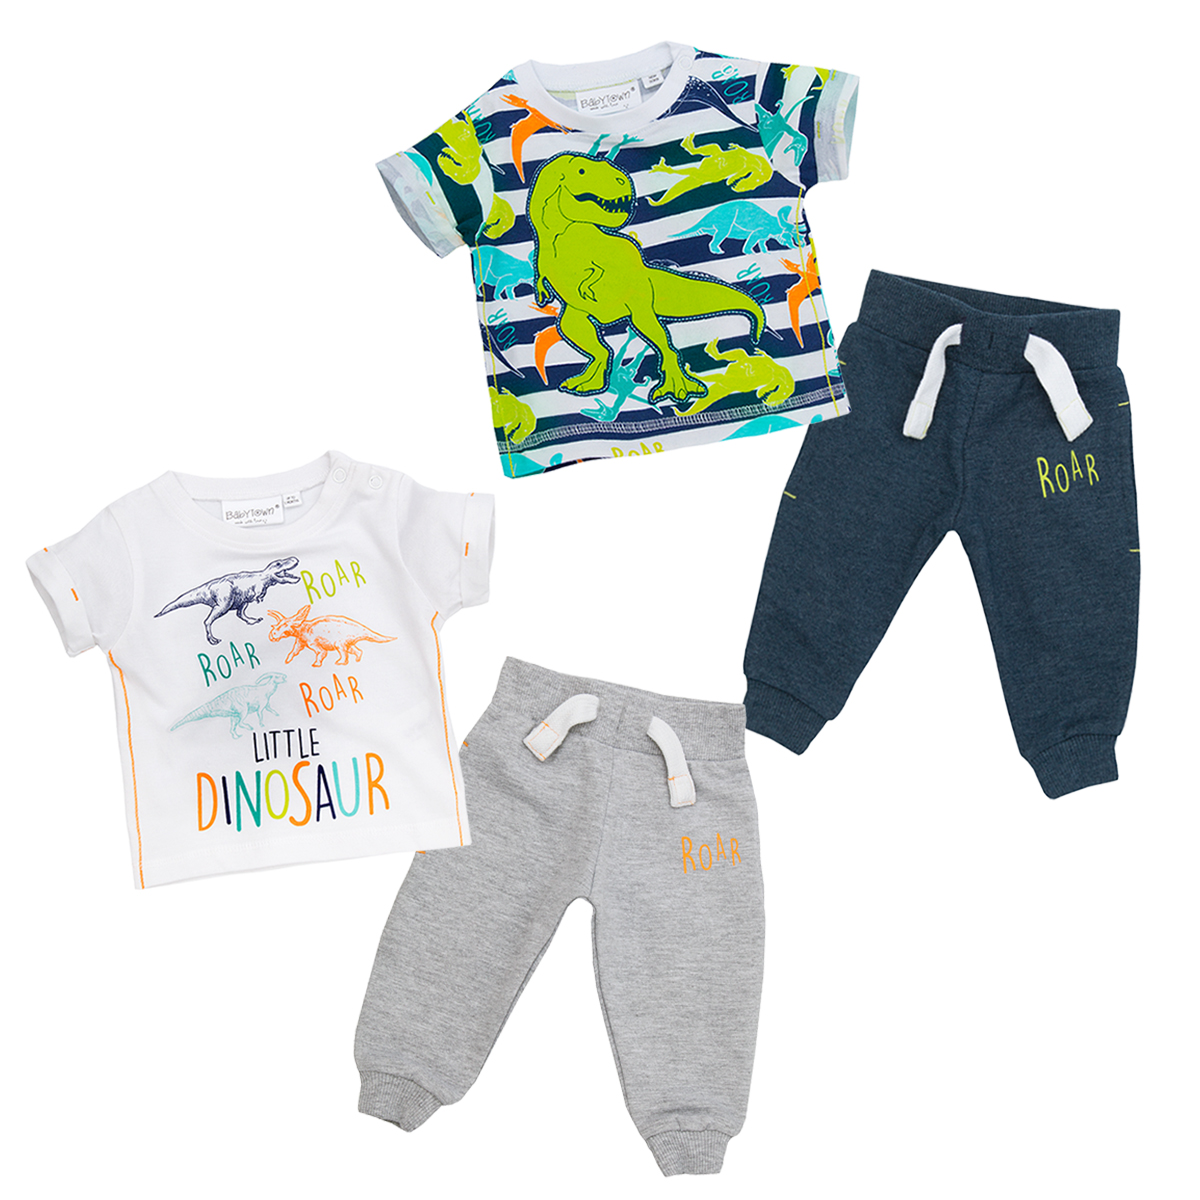 ad77cacc2 Newborn Baby Boys Top   Joggers Set Dinosaur Outfit T-Shirt Trousers ...